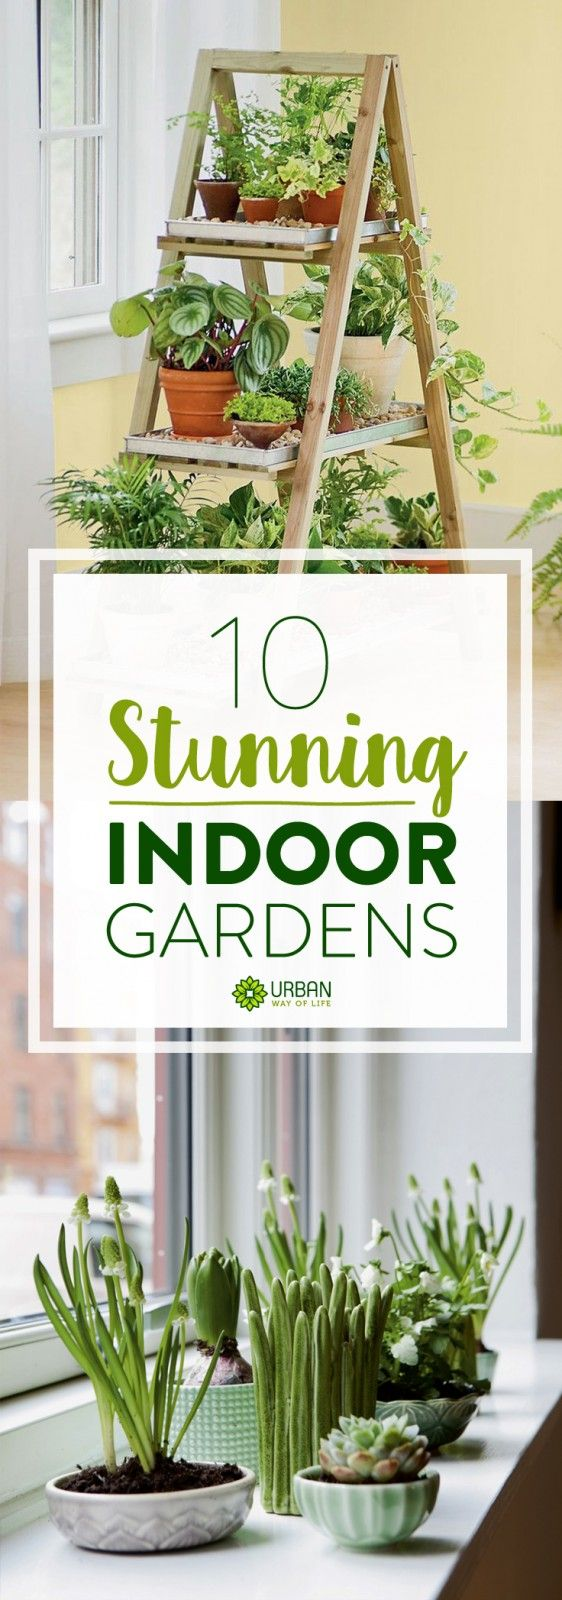 Indoor Garden Apartment Indoor gardening ideas diy inspiration for your apartment by indoor gardening ideas diy inspiration for your apartment by urban way of life httpurbanwayoflife10 stunning indoor gardens workwithnaturefo